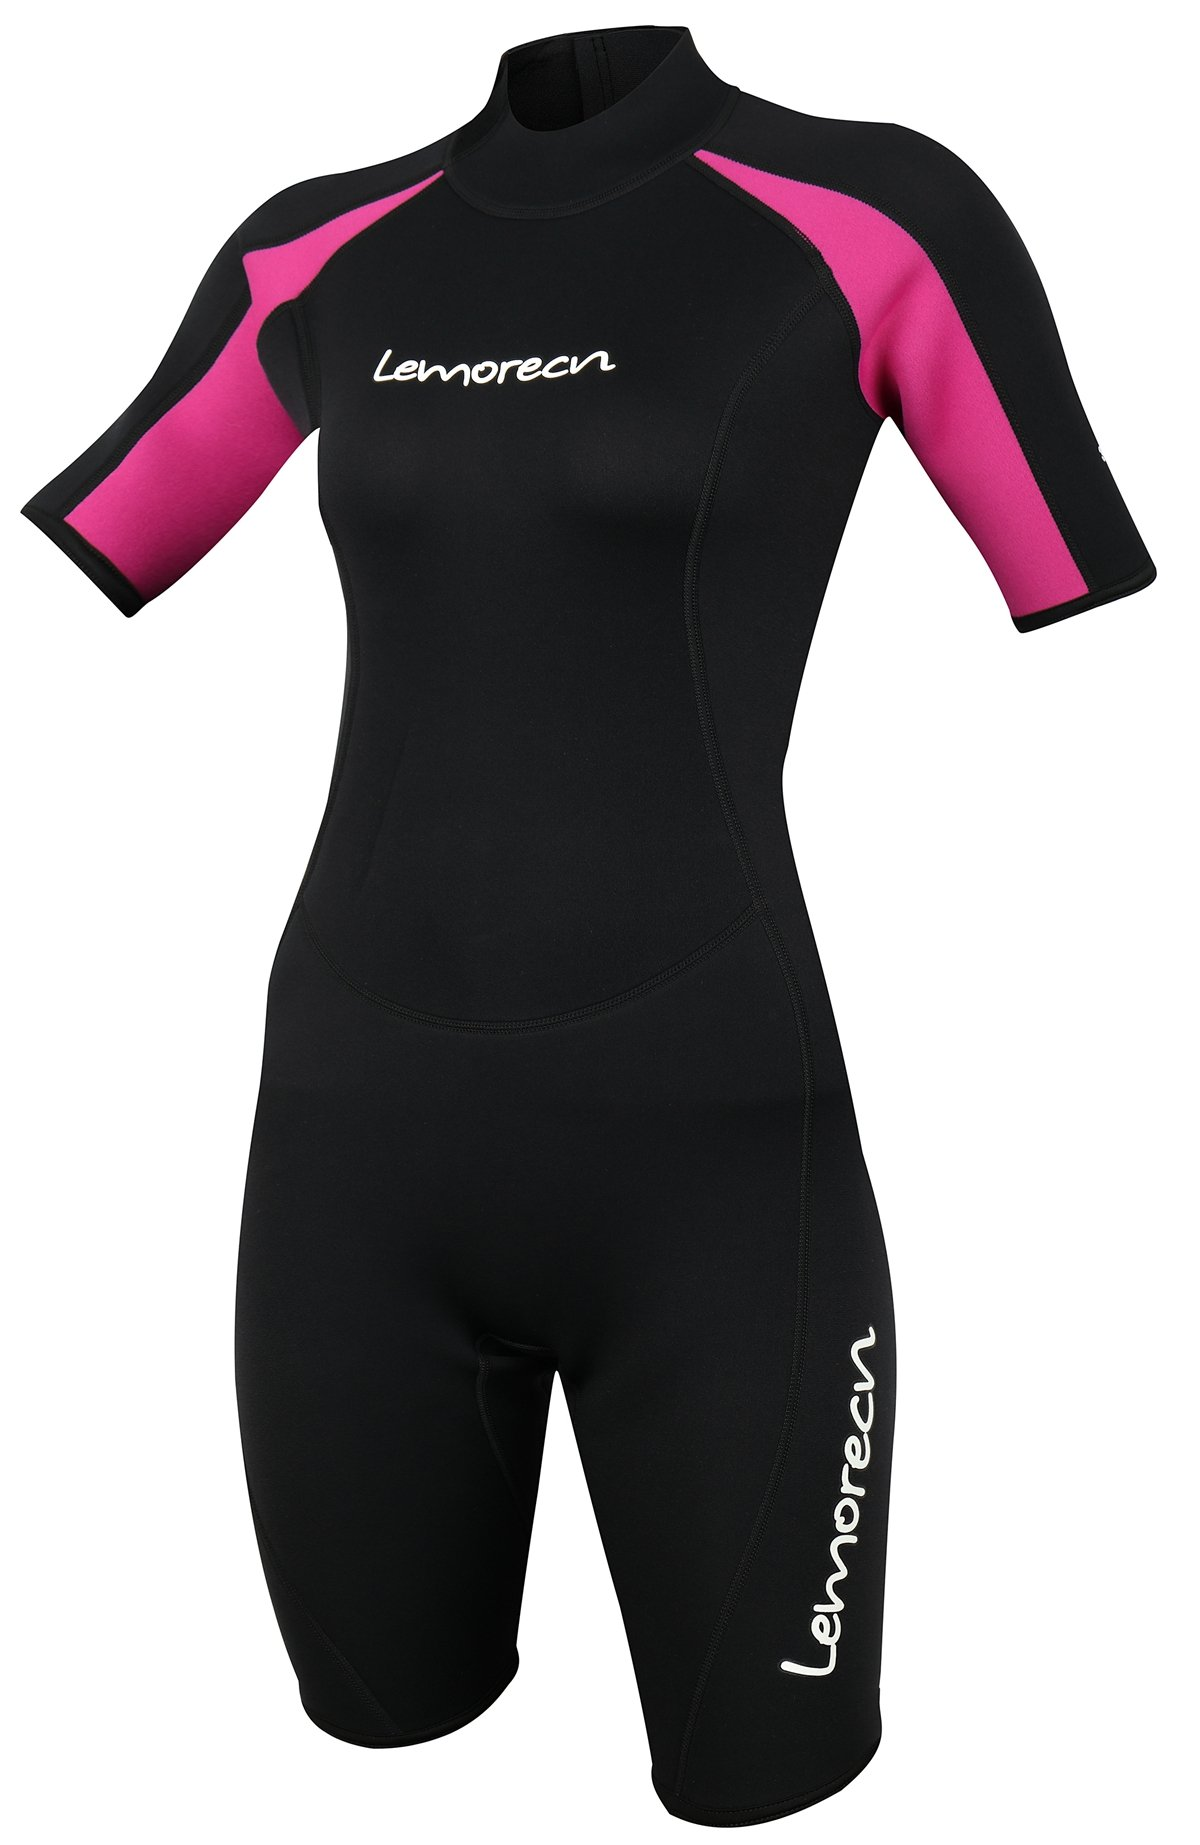 Lemorecn Wetsuits Womens Premium Neoprene Diving Suit 3mm Shorty Jumpsuit(3045-4) by Lemorecn